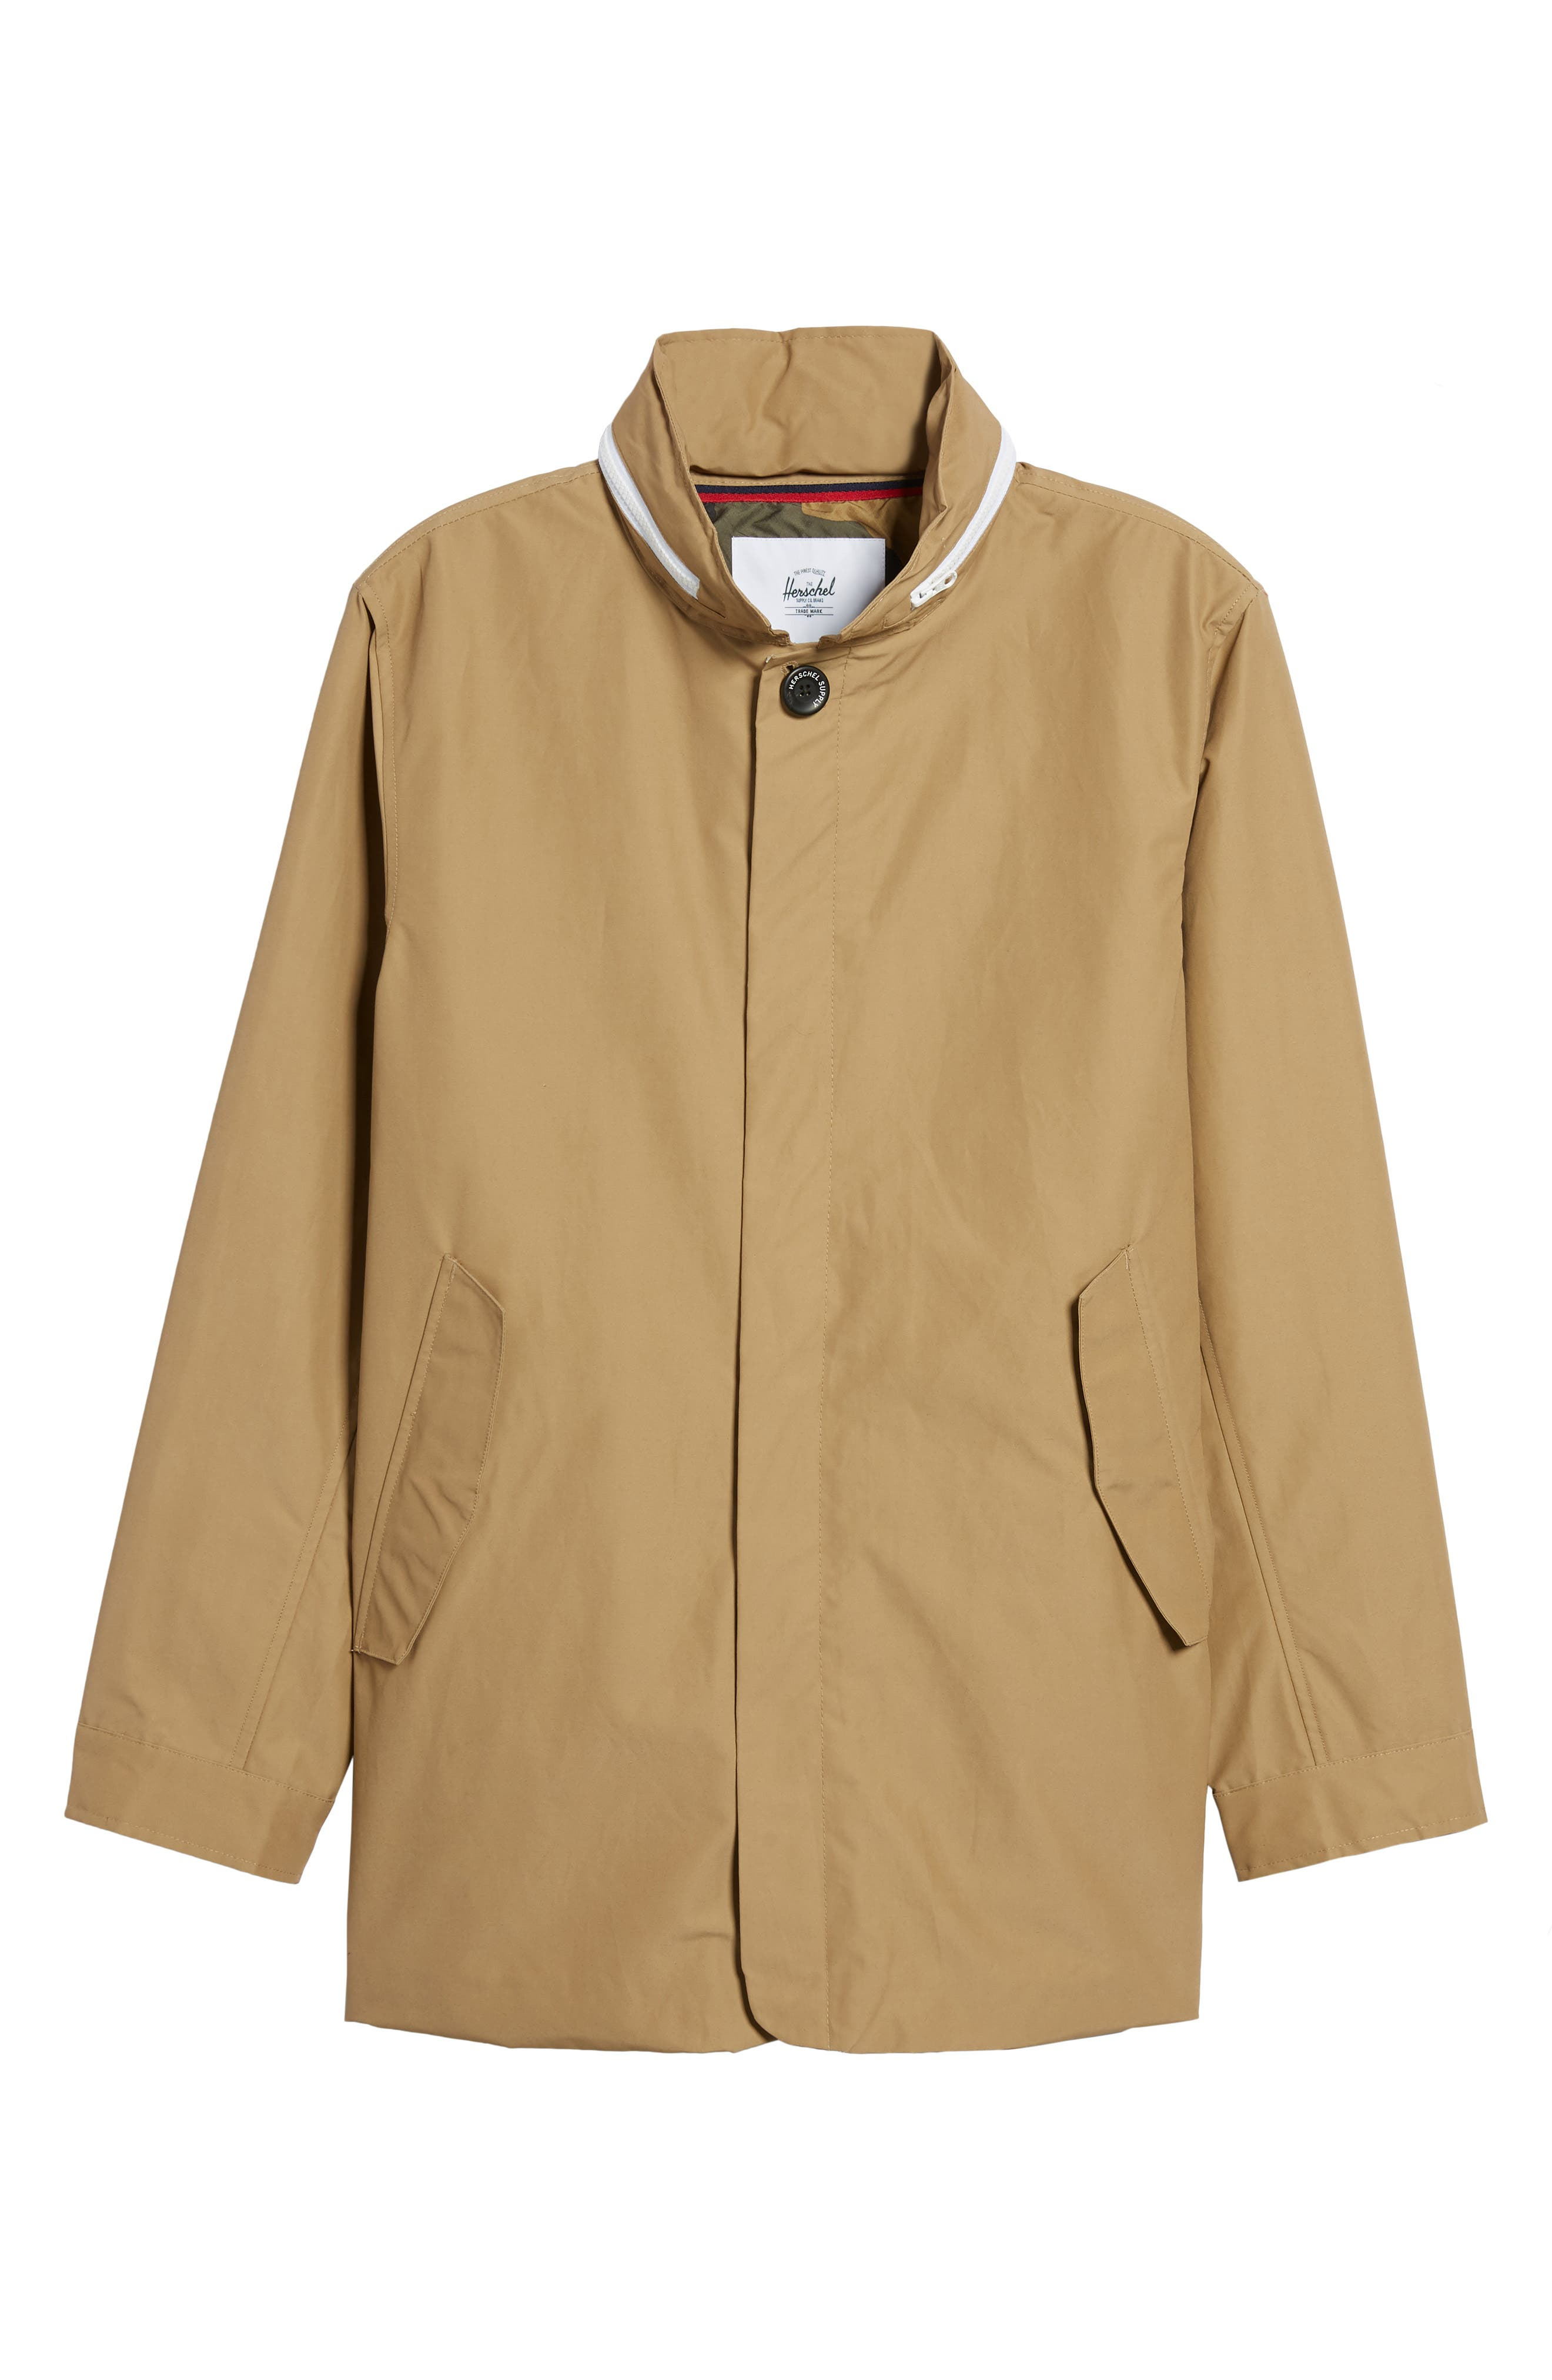 Stowaway Mac Jacket,                             Alternate thumbnail 6, color,                             Khaki/ Woodland Camo